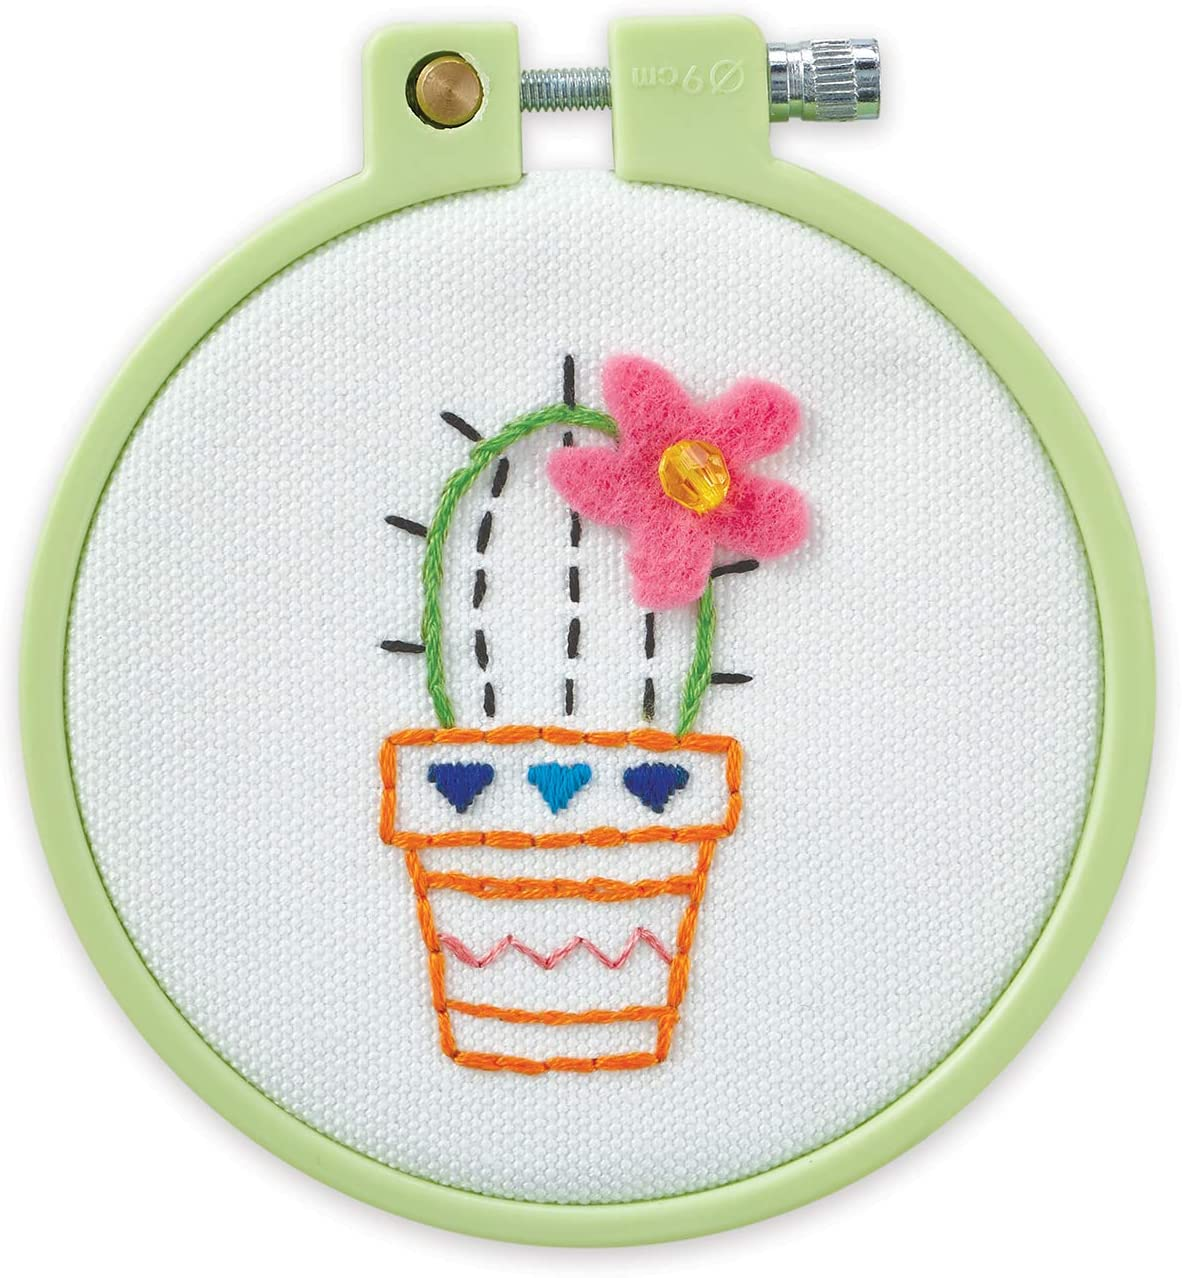 MINDWARE Make-Your-OWN Embroidery Crafts